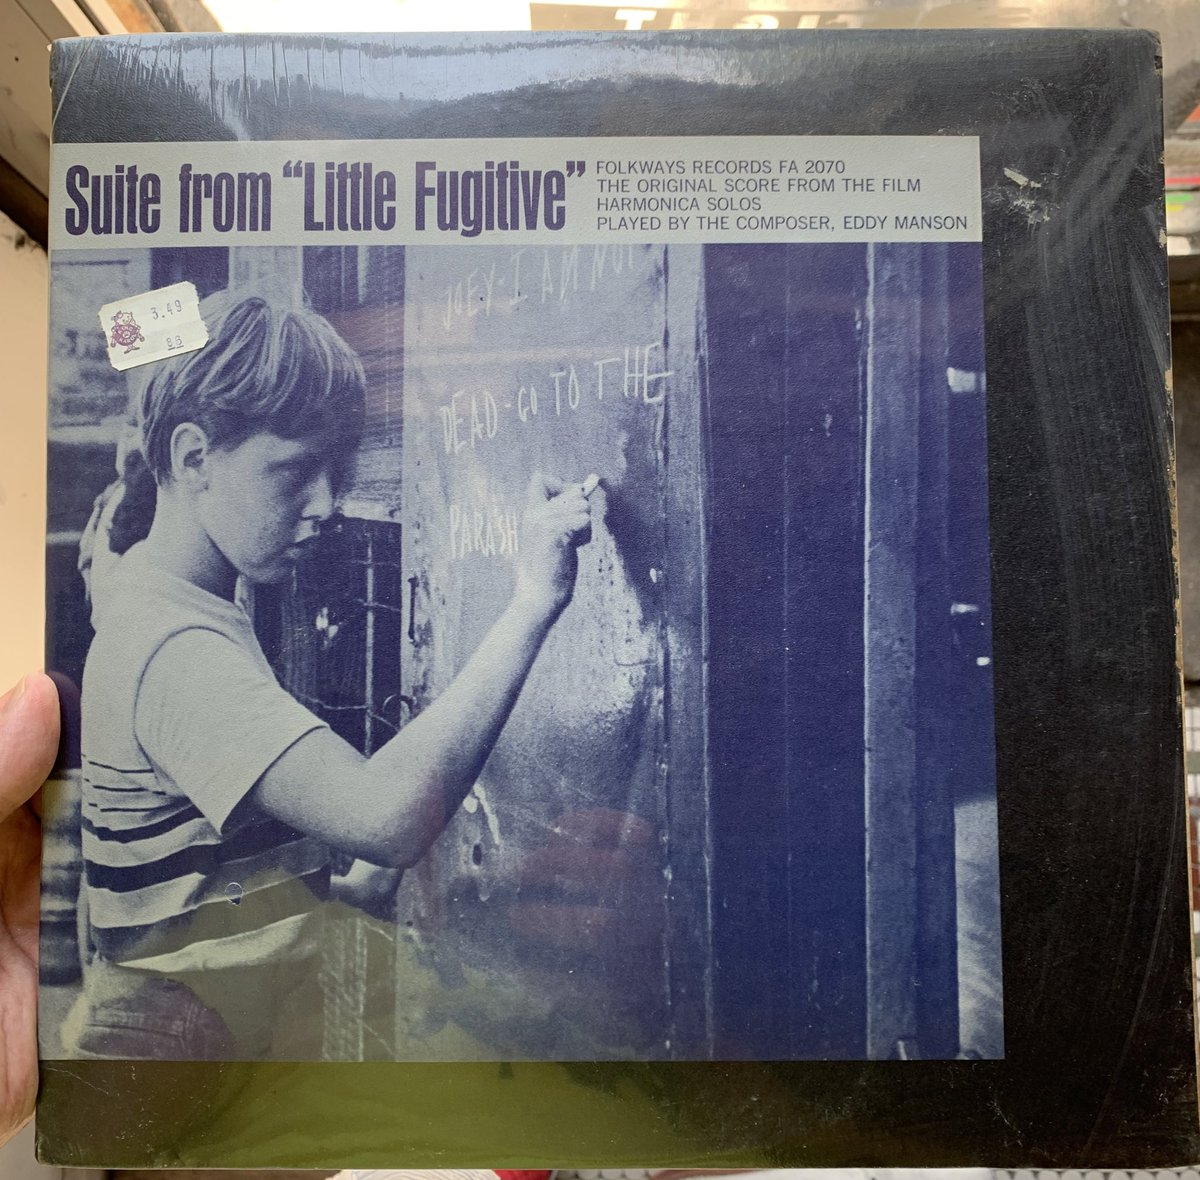 @tywilc I just got this sealed. It's going to stay that way, which feels strange too . check out that price tag!